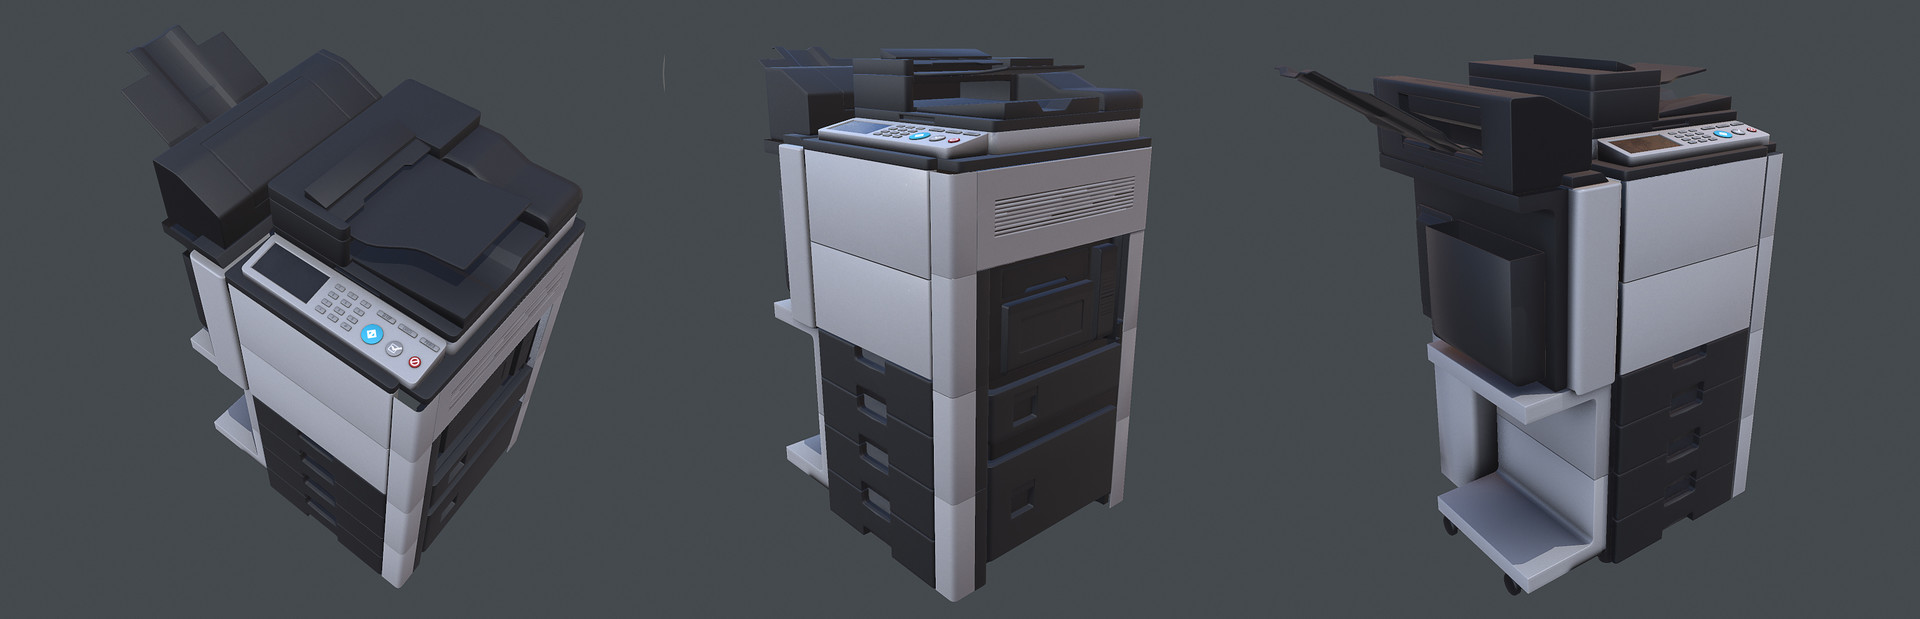 Sergey tabakov photocopier machine 14